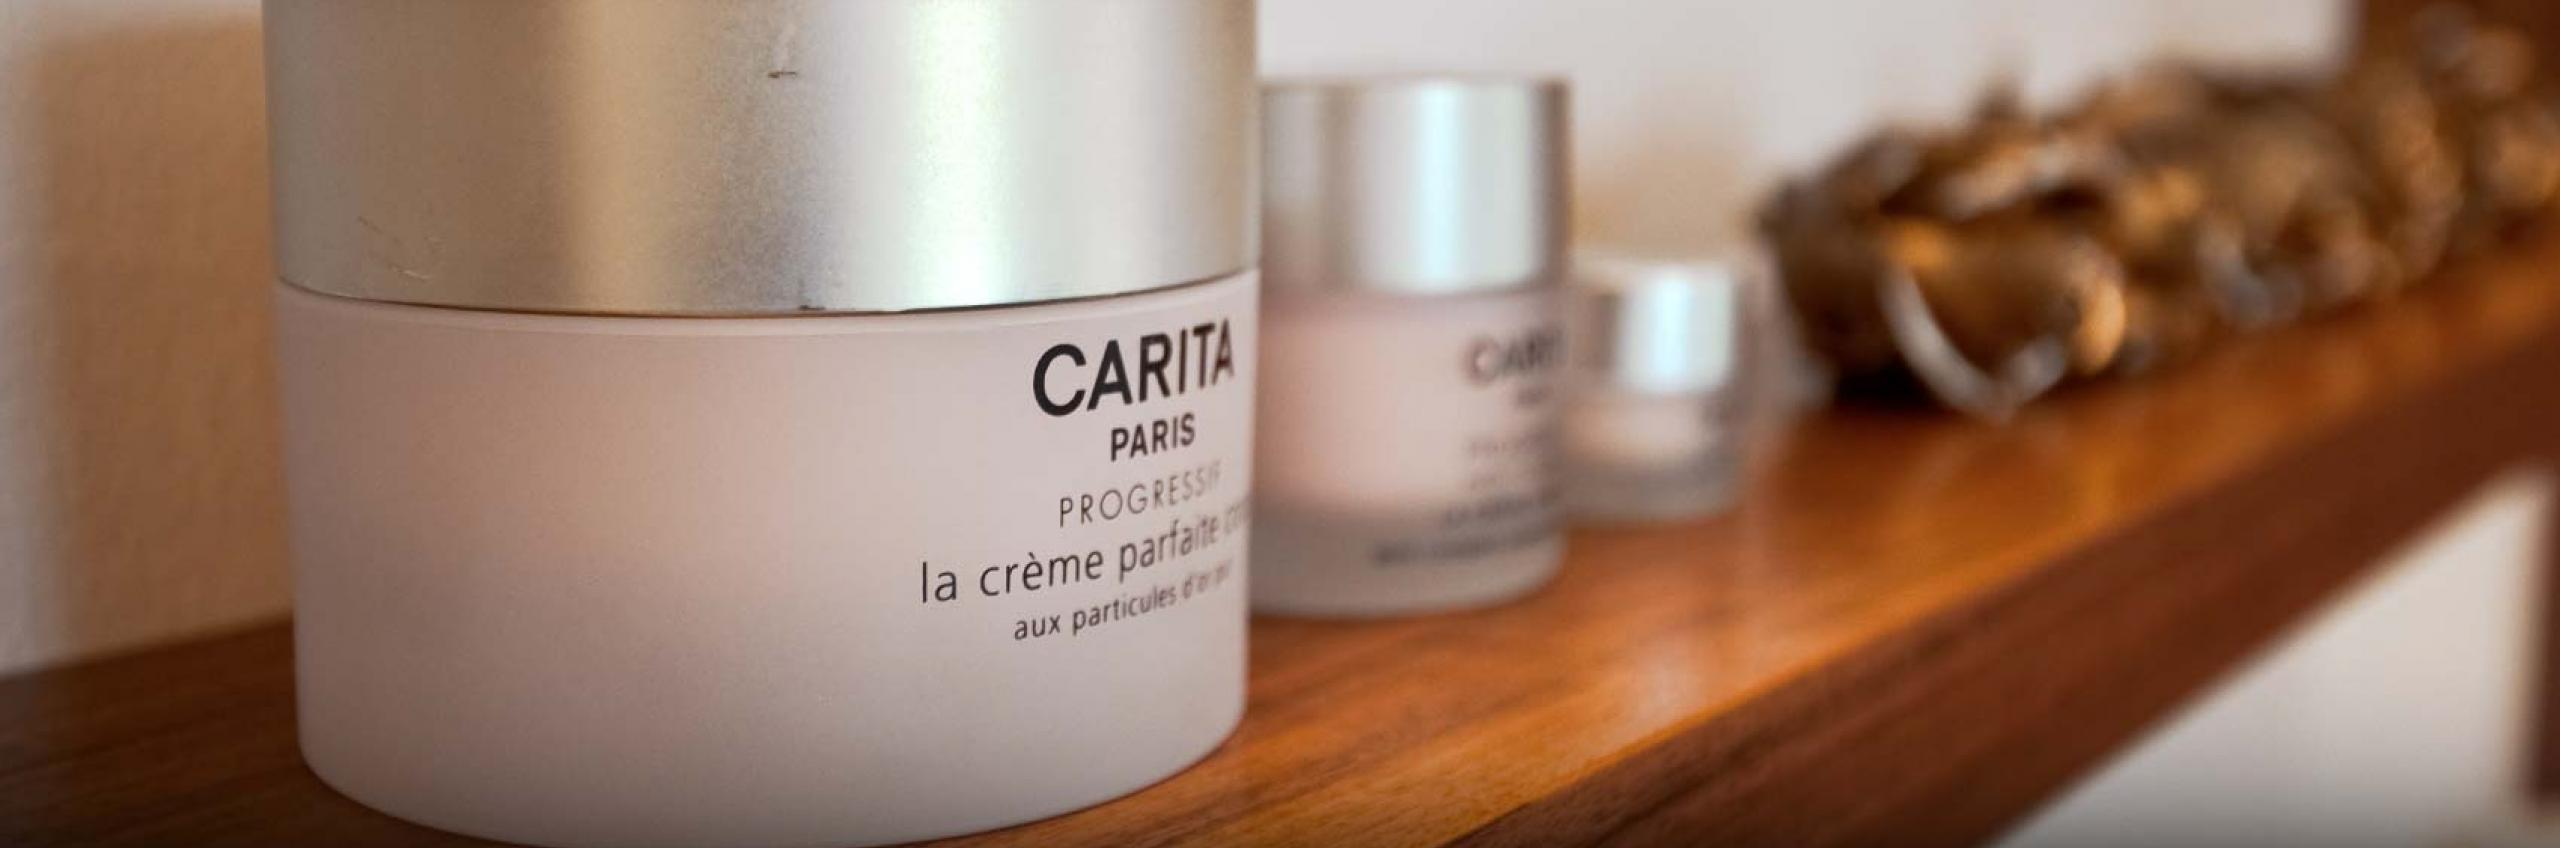 Carita Paris Maison de Beaute professional face care